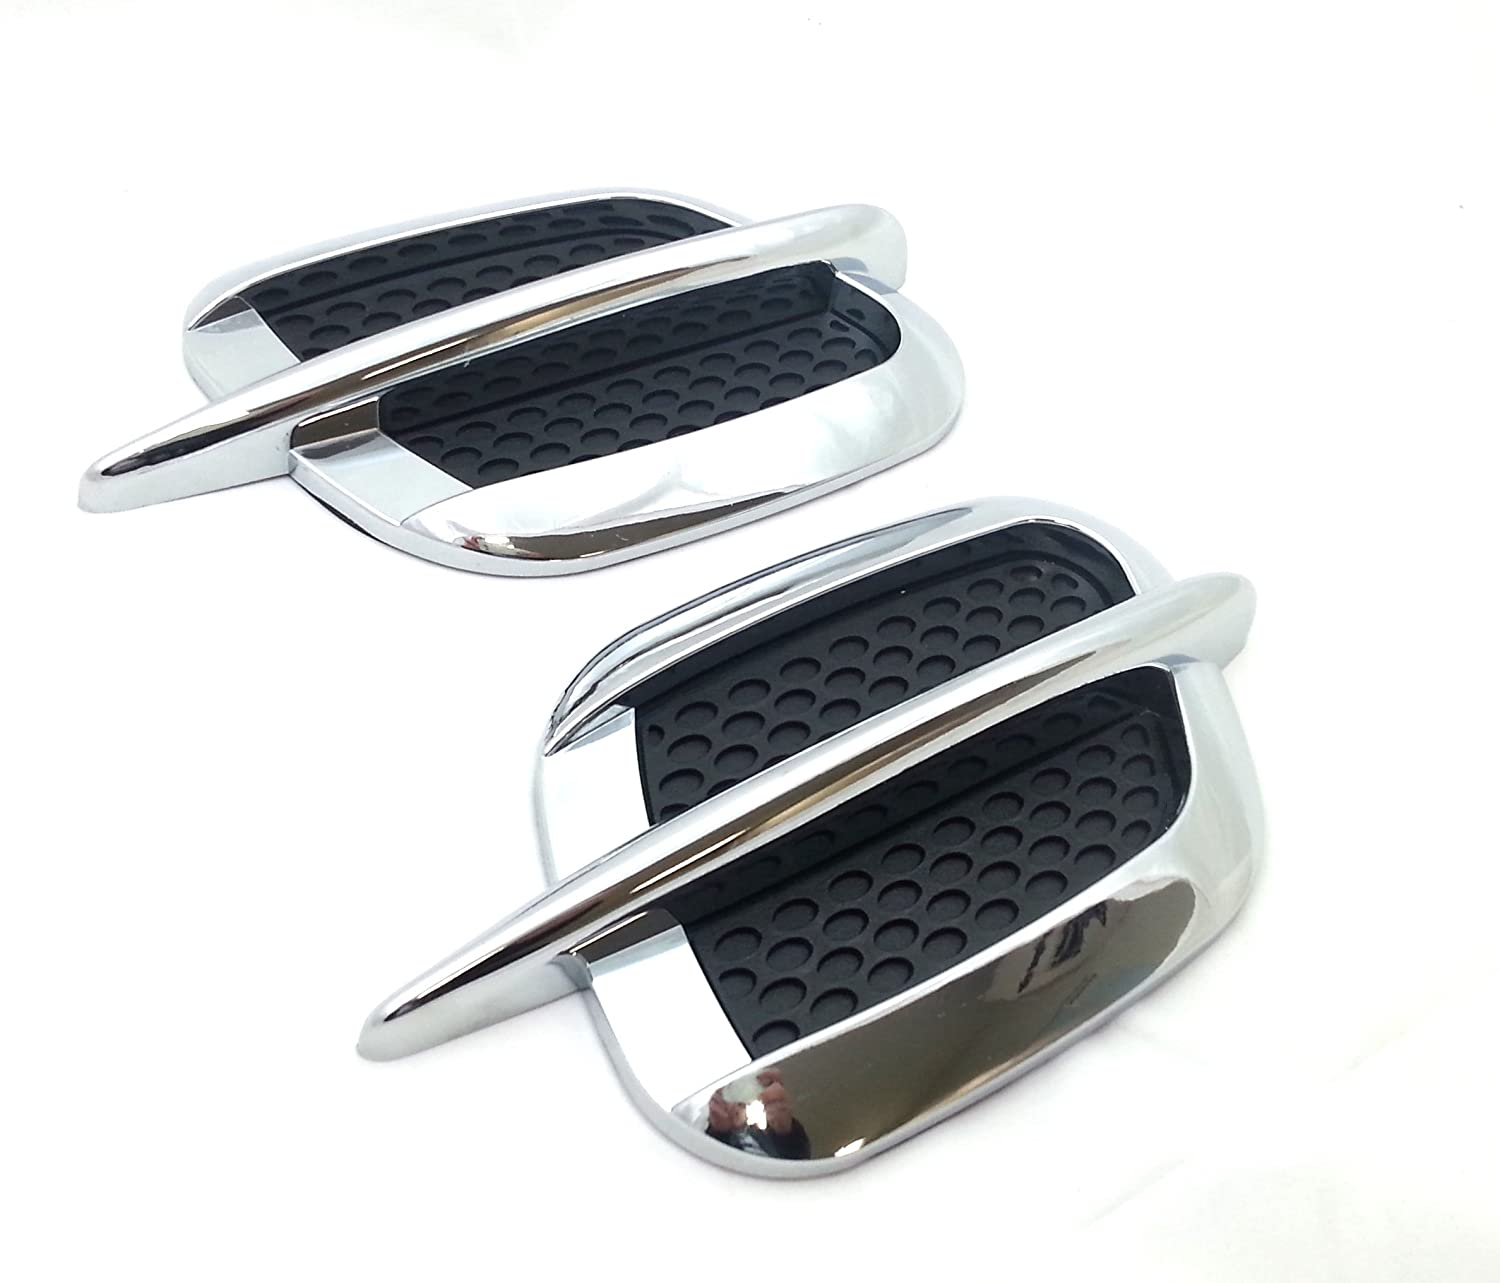 2 x Side Wing Air Flow Intake Vent Trim Fender Grill Universal Black and Chrome